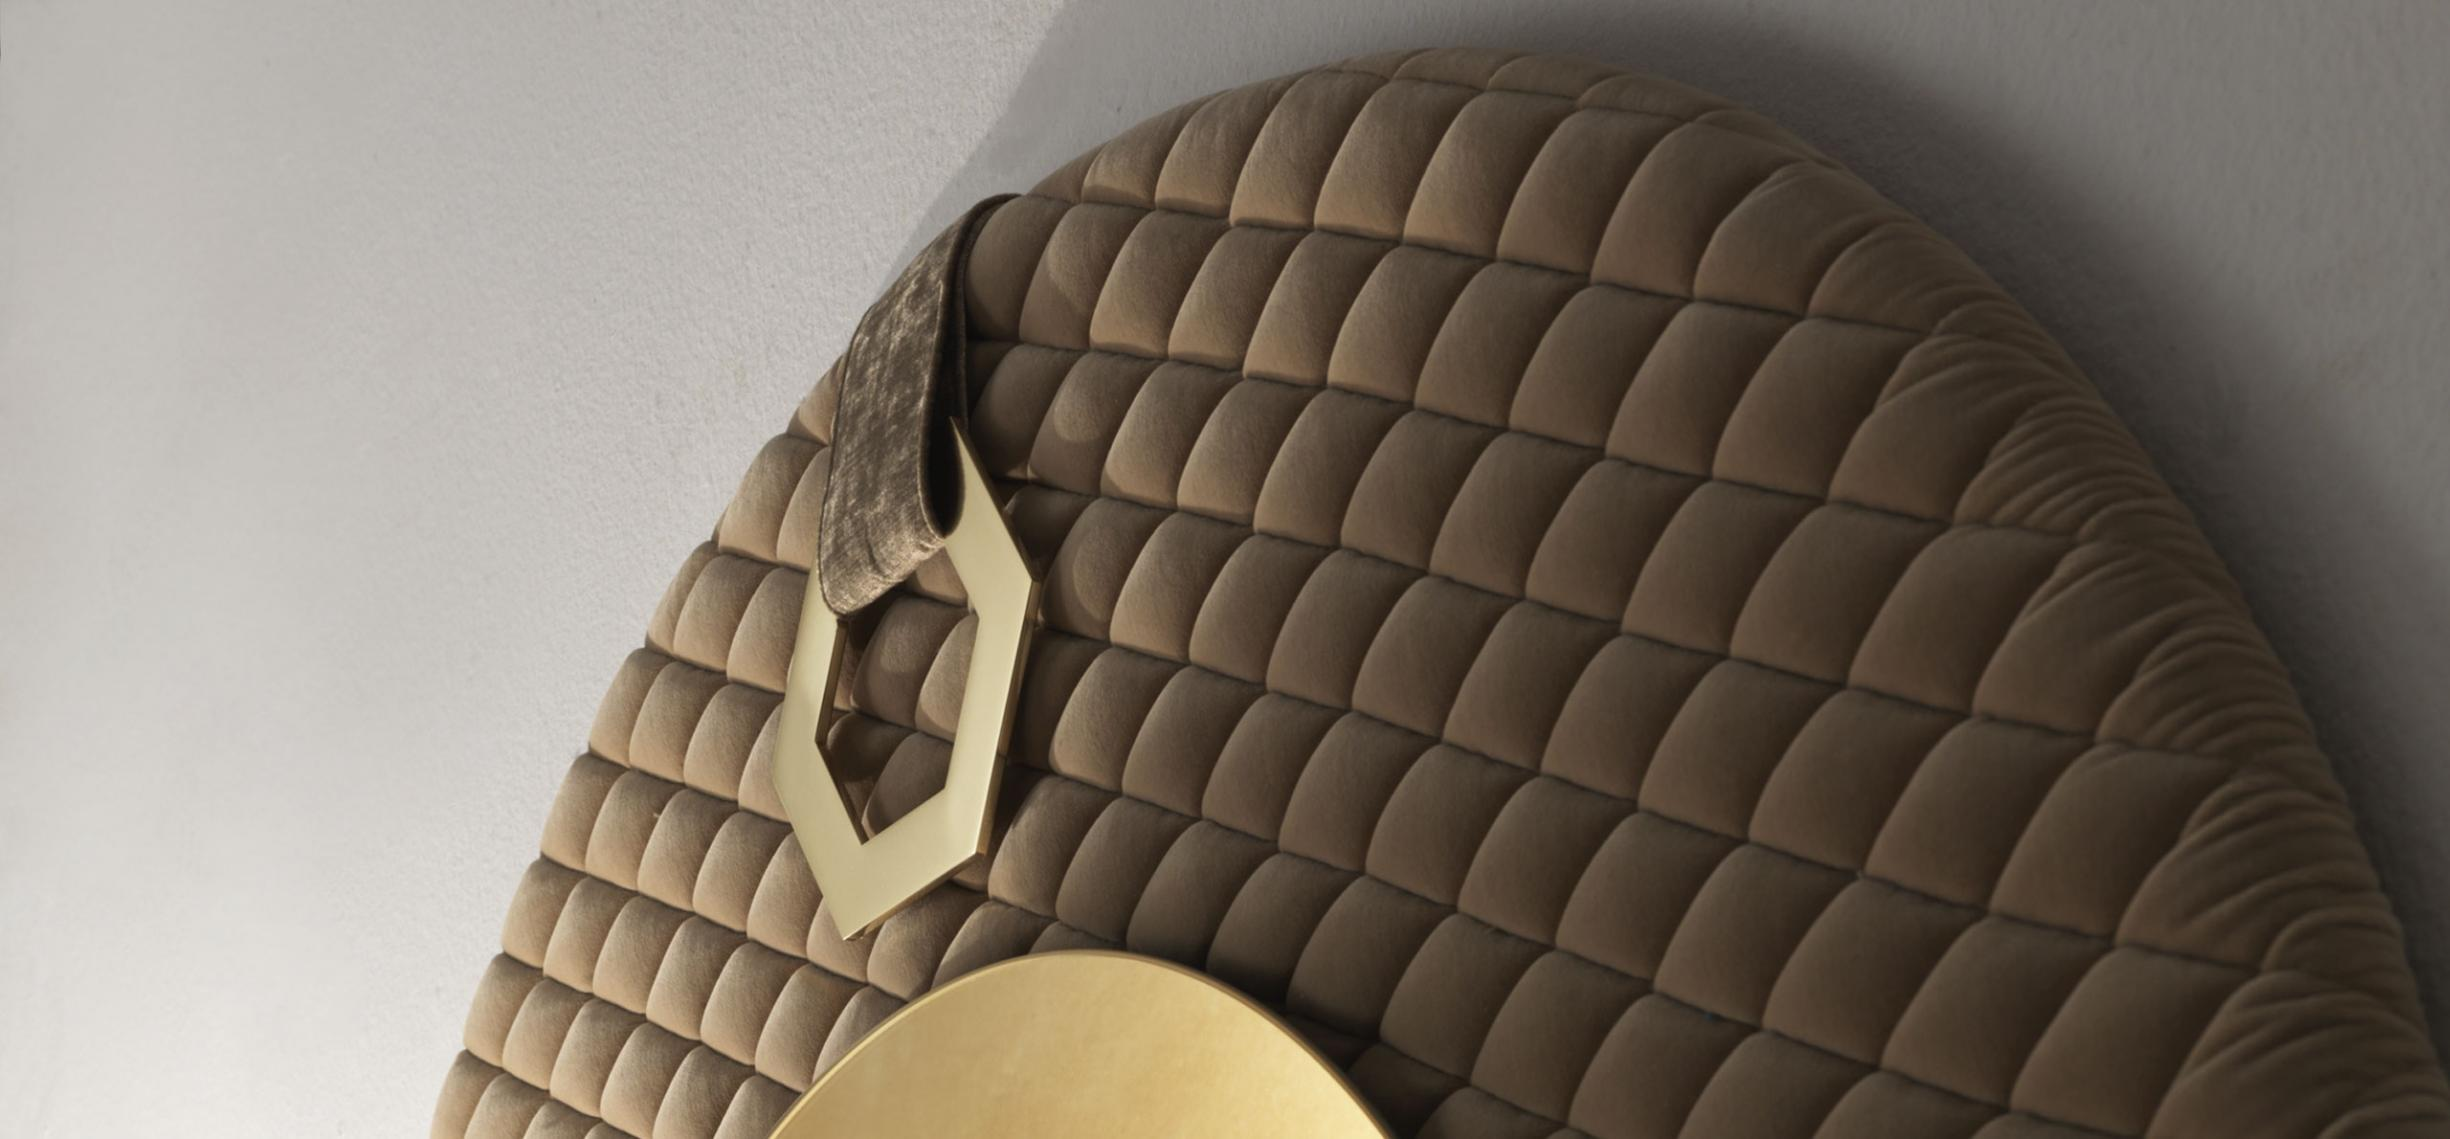 Caspanitino - Excentrique fashion furniture